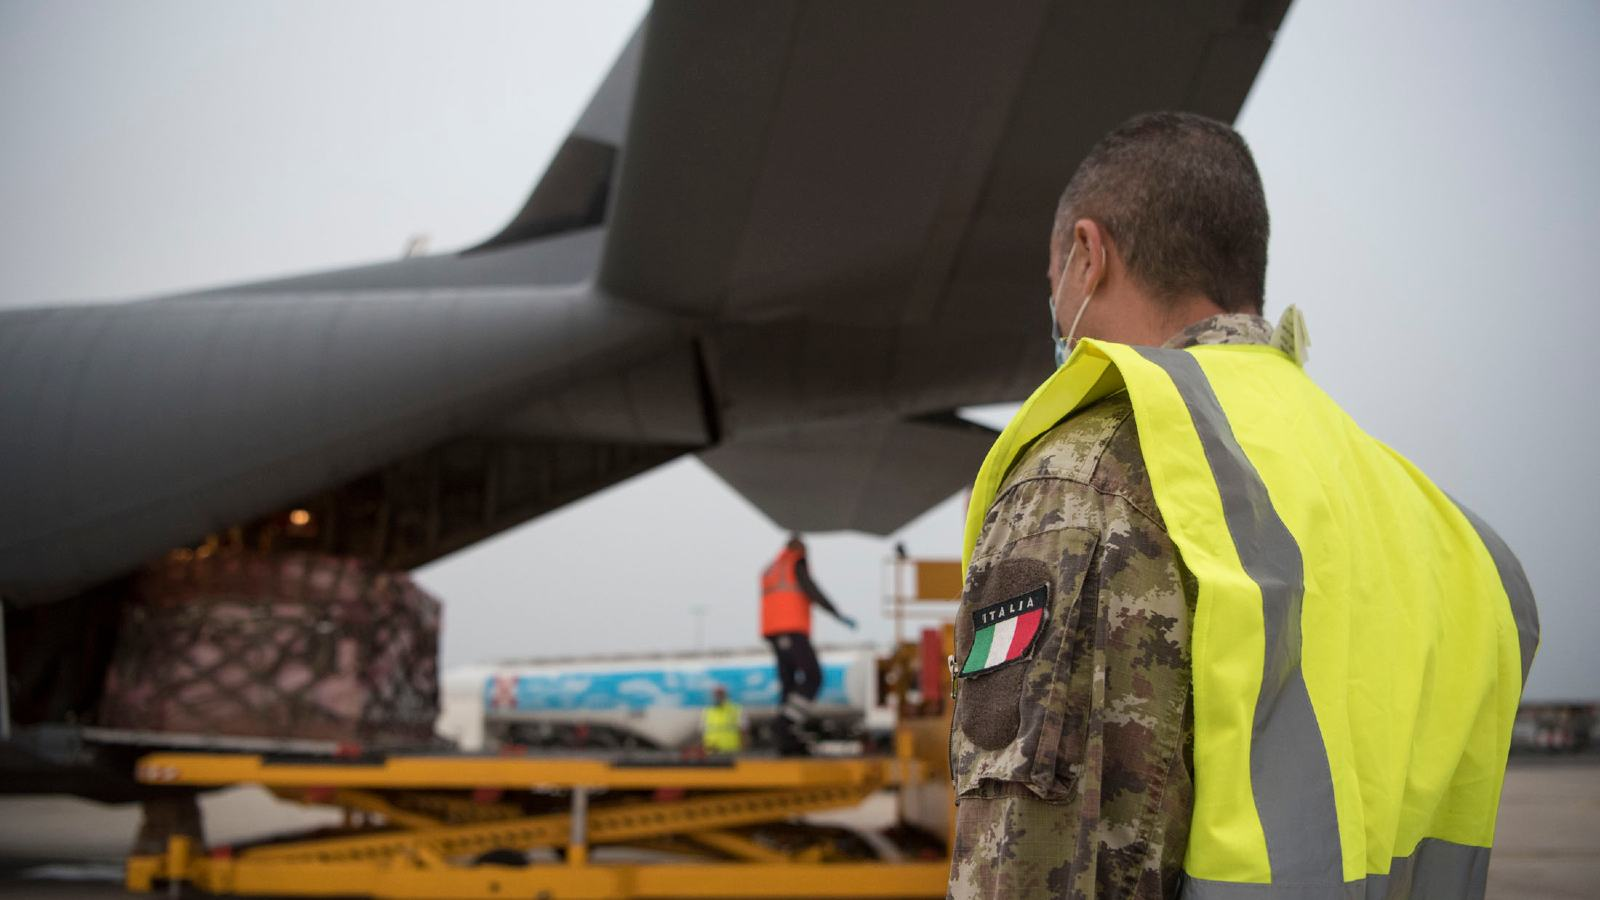 An Italian air force member stands-by as a pallet of medical supplies from Milan, Italy is off-loaded in Rome, May, 13, 2020. In response to the ongoing coronavirus disease 2019 outbreak, an 86th Airlift Wing C-130J Super Hercules assisted the Italian government in transporting medical supplies between supply hubs in Milan and Rome, Italy. (U.S. Air Force photo by Senior Airman Kristof J. Rixmann)